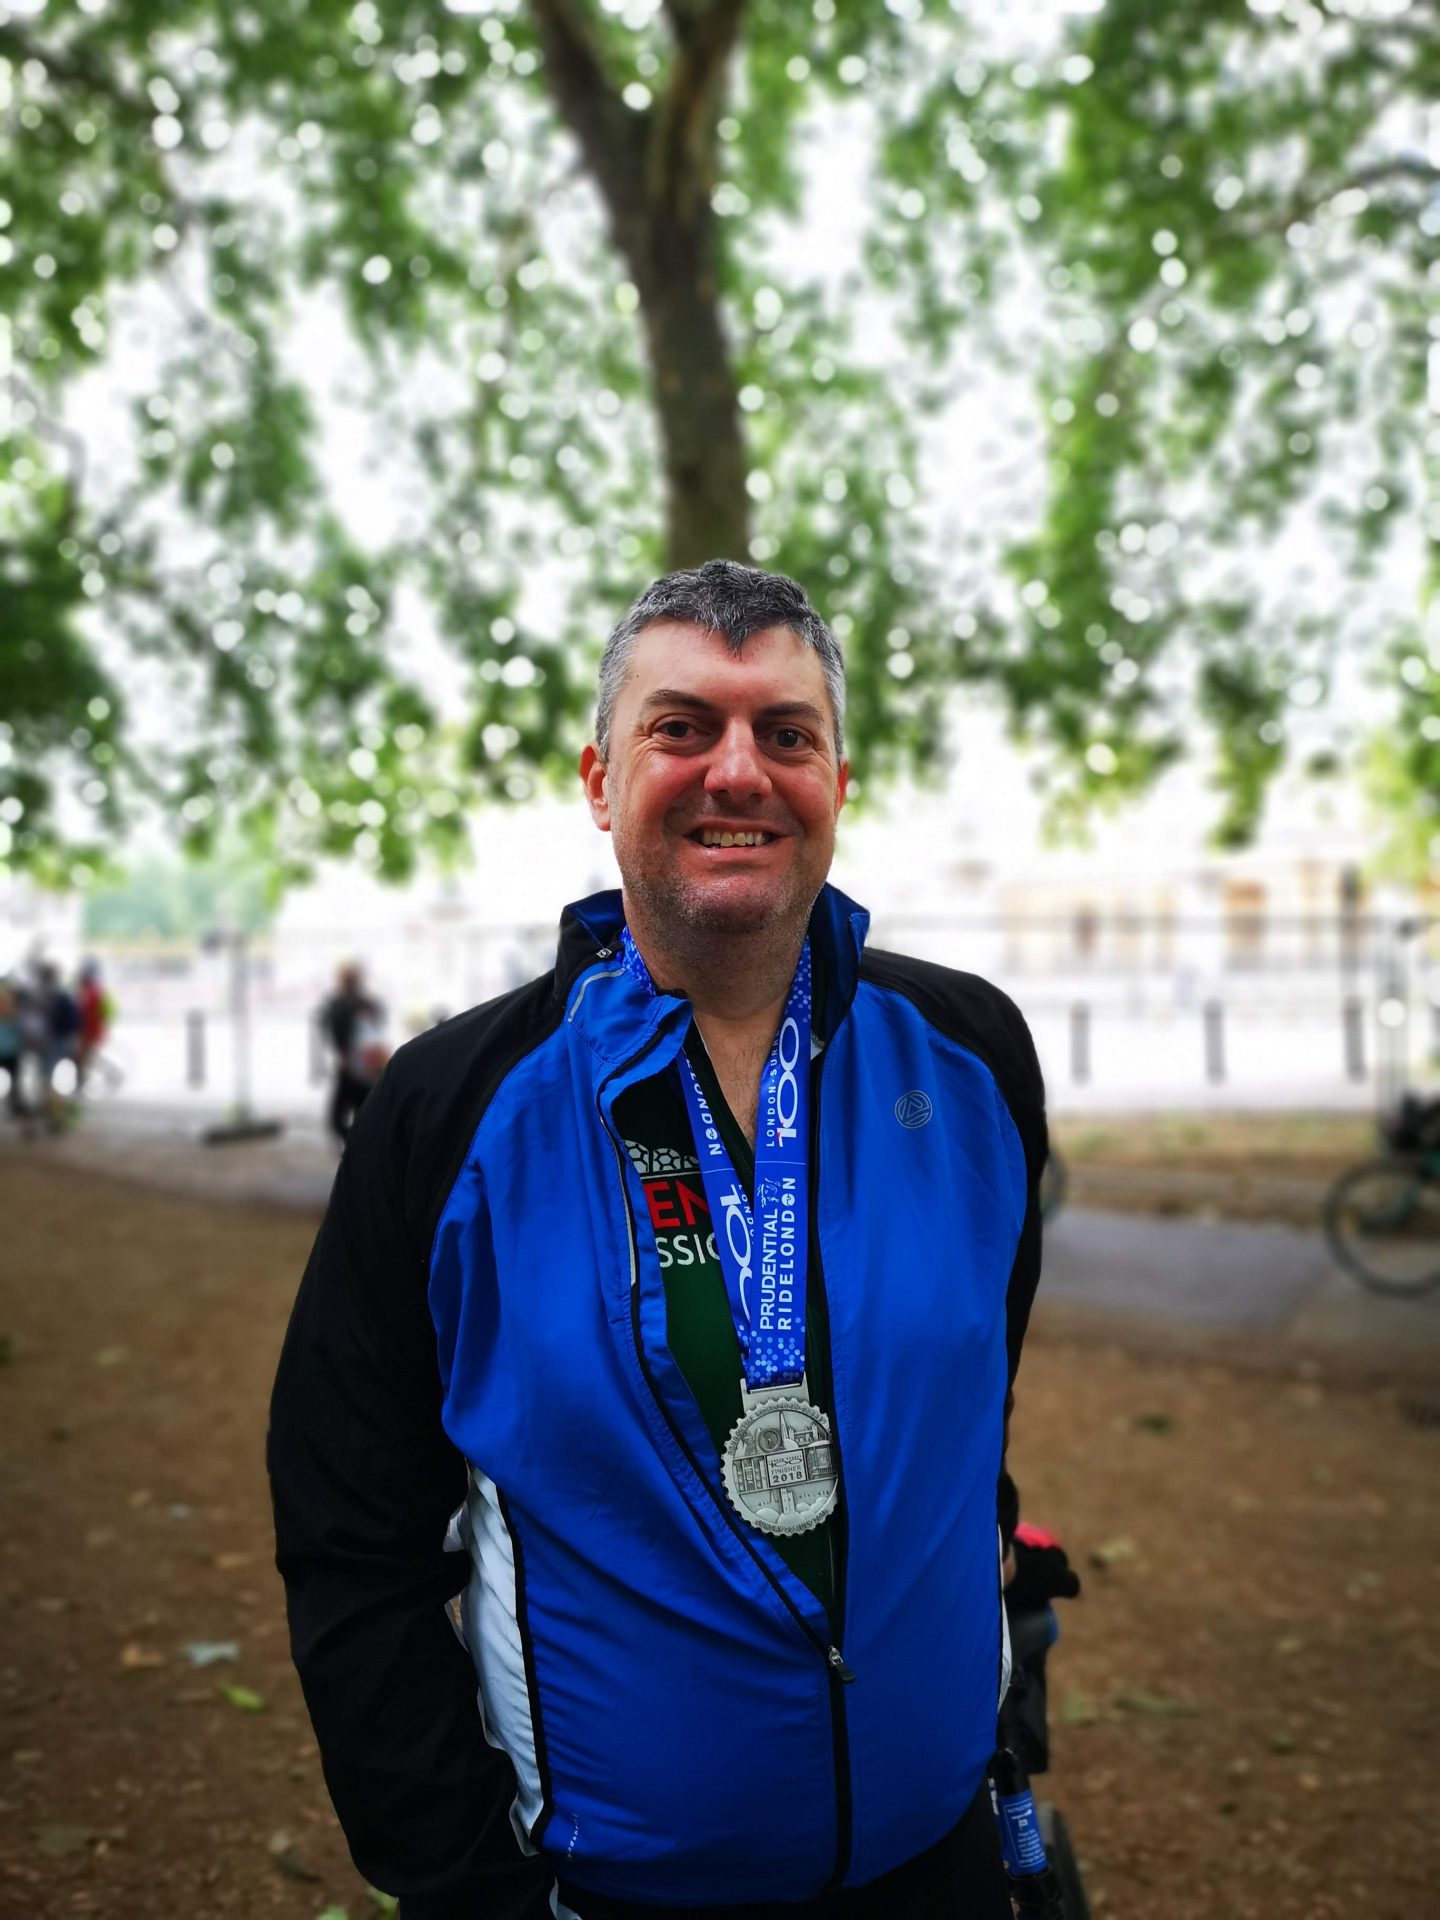 Jim with Medal 1440x1920 - Jim did it! RideLondon-Surrey for Naomi House & Jacksplace